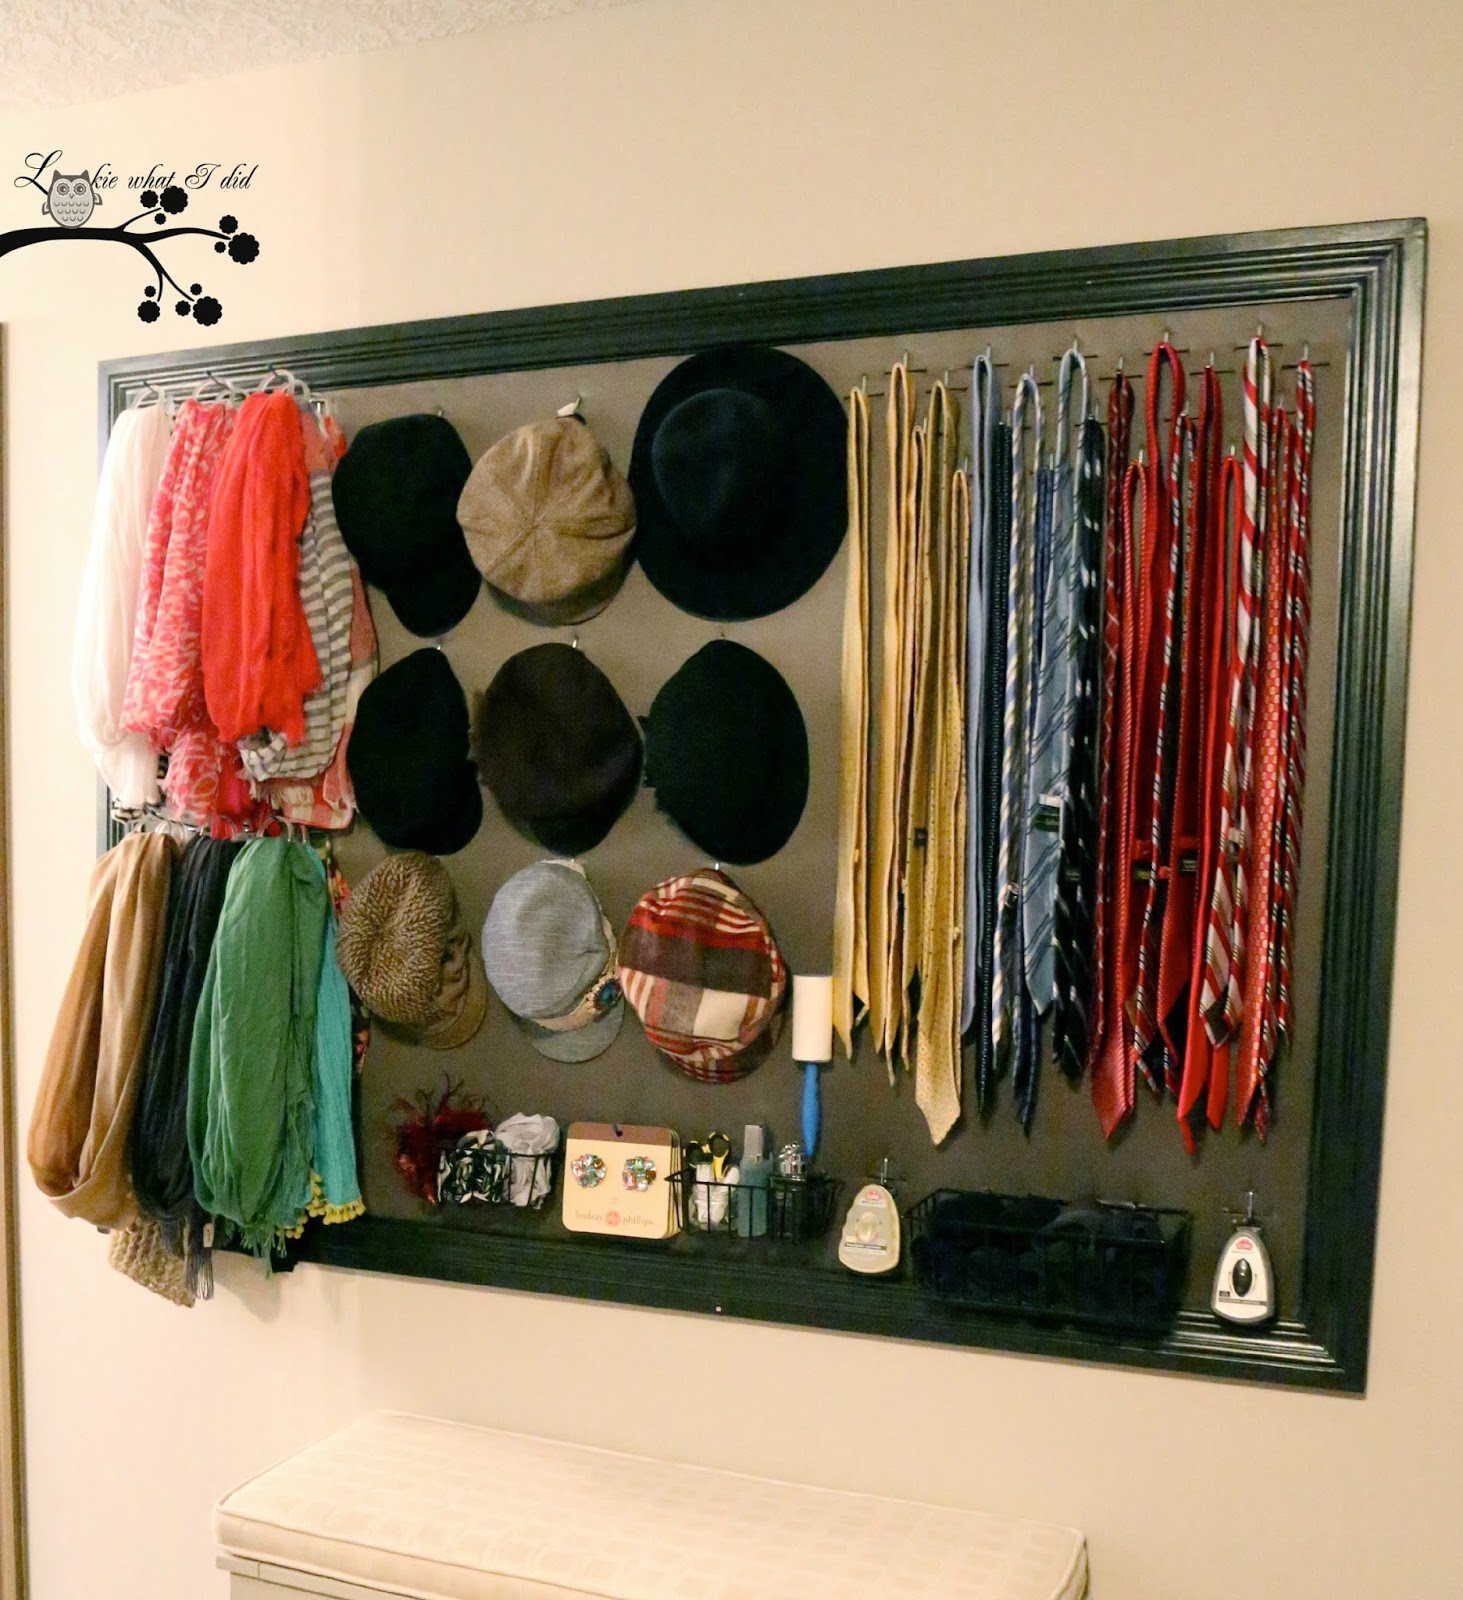 Best ideas about Closet Organizers DIY . Save or Pin Lookie What I Did His and Her Closet Organizer Now.